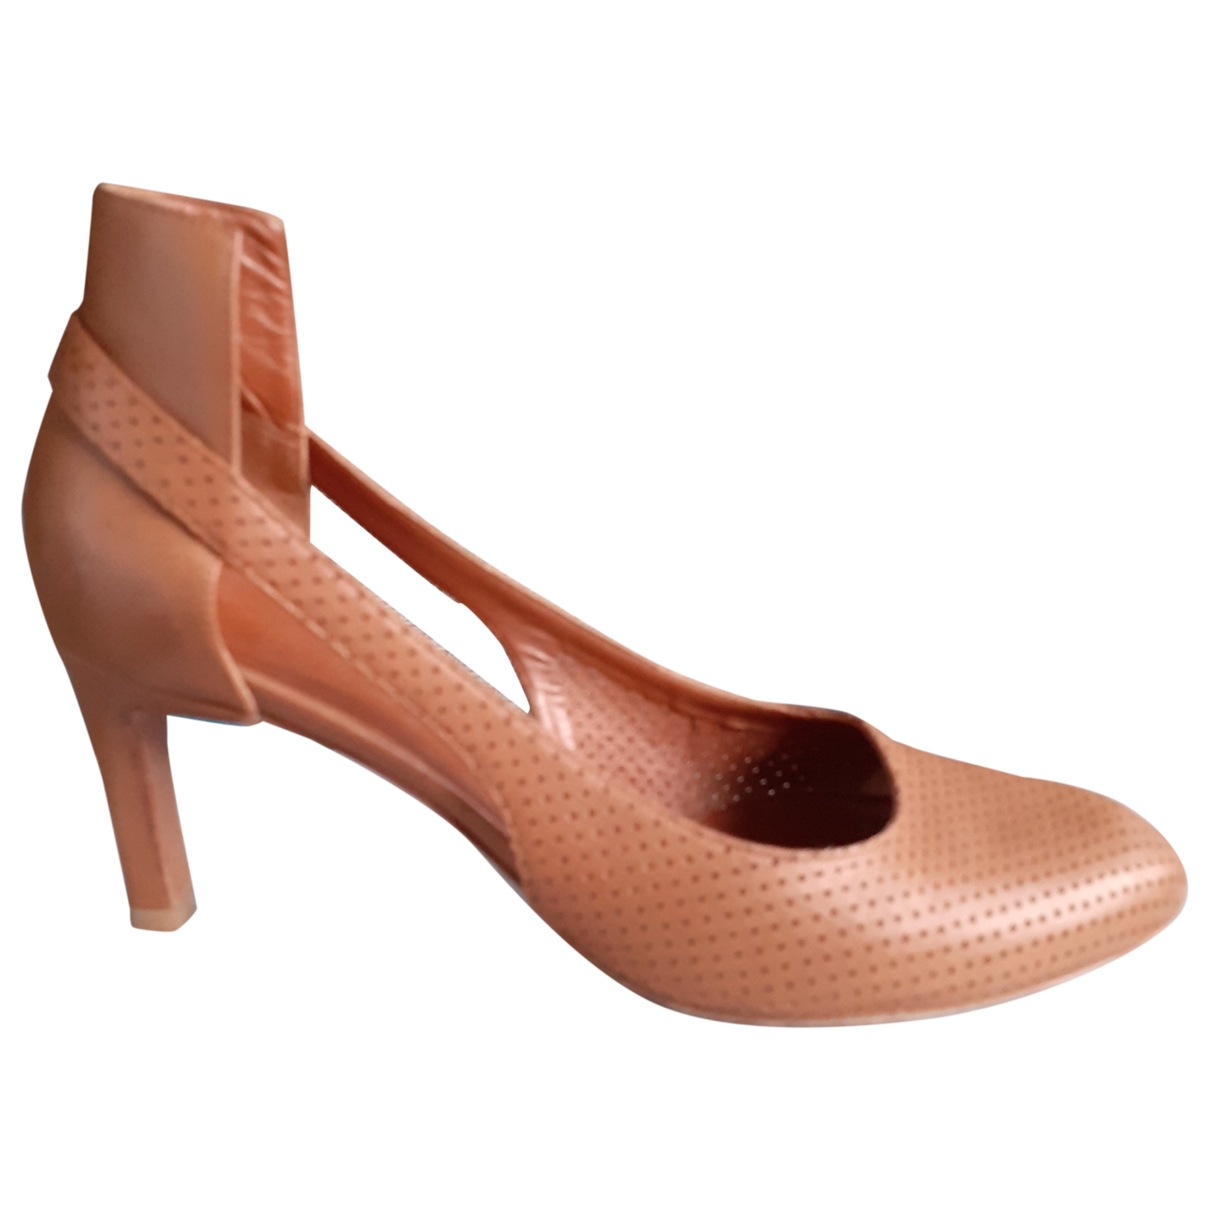 Véronique Branquinho \N Camel Leather Heels for Women 38 EU